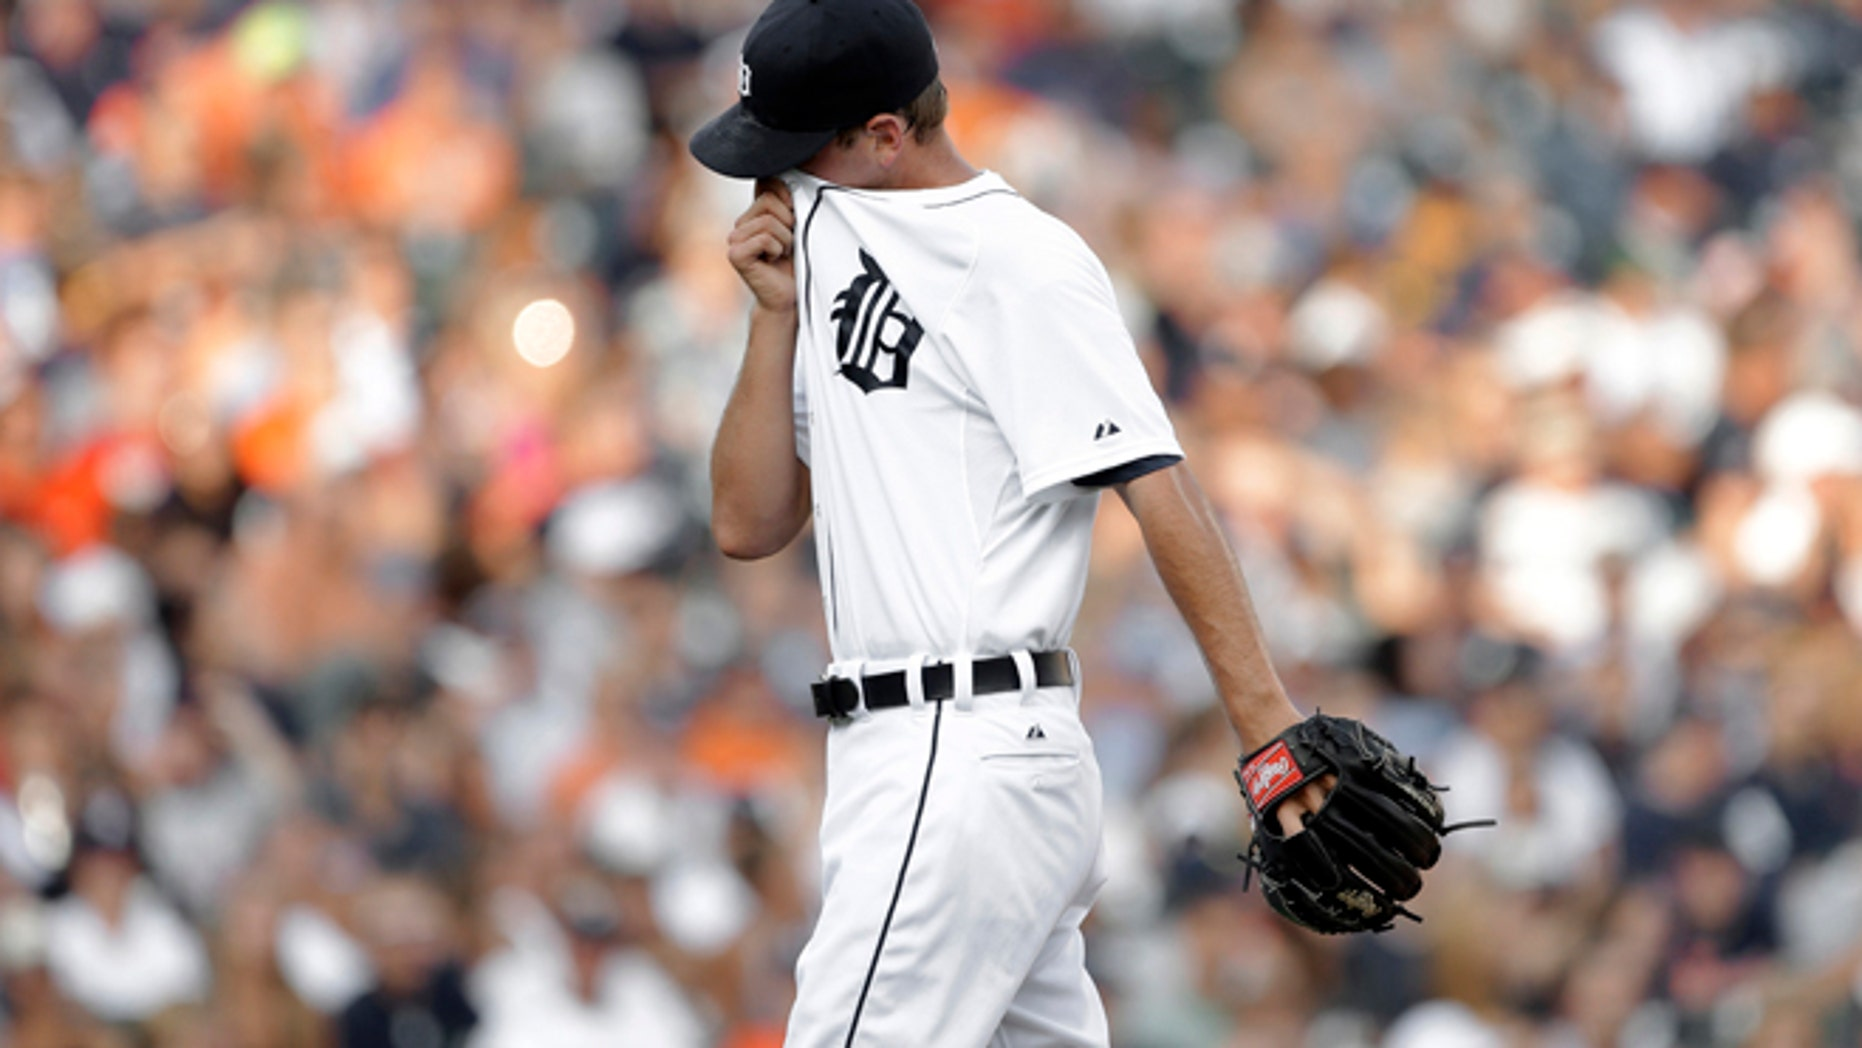 July 17: Tigers' Jacob Turner reacts after giving up a solo home run to Los Angeles Angels' Albert Pujols. The Detroit Tigers game against the Los Angeles Angles went on as planned, despite bomb threat.